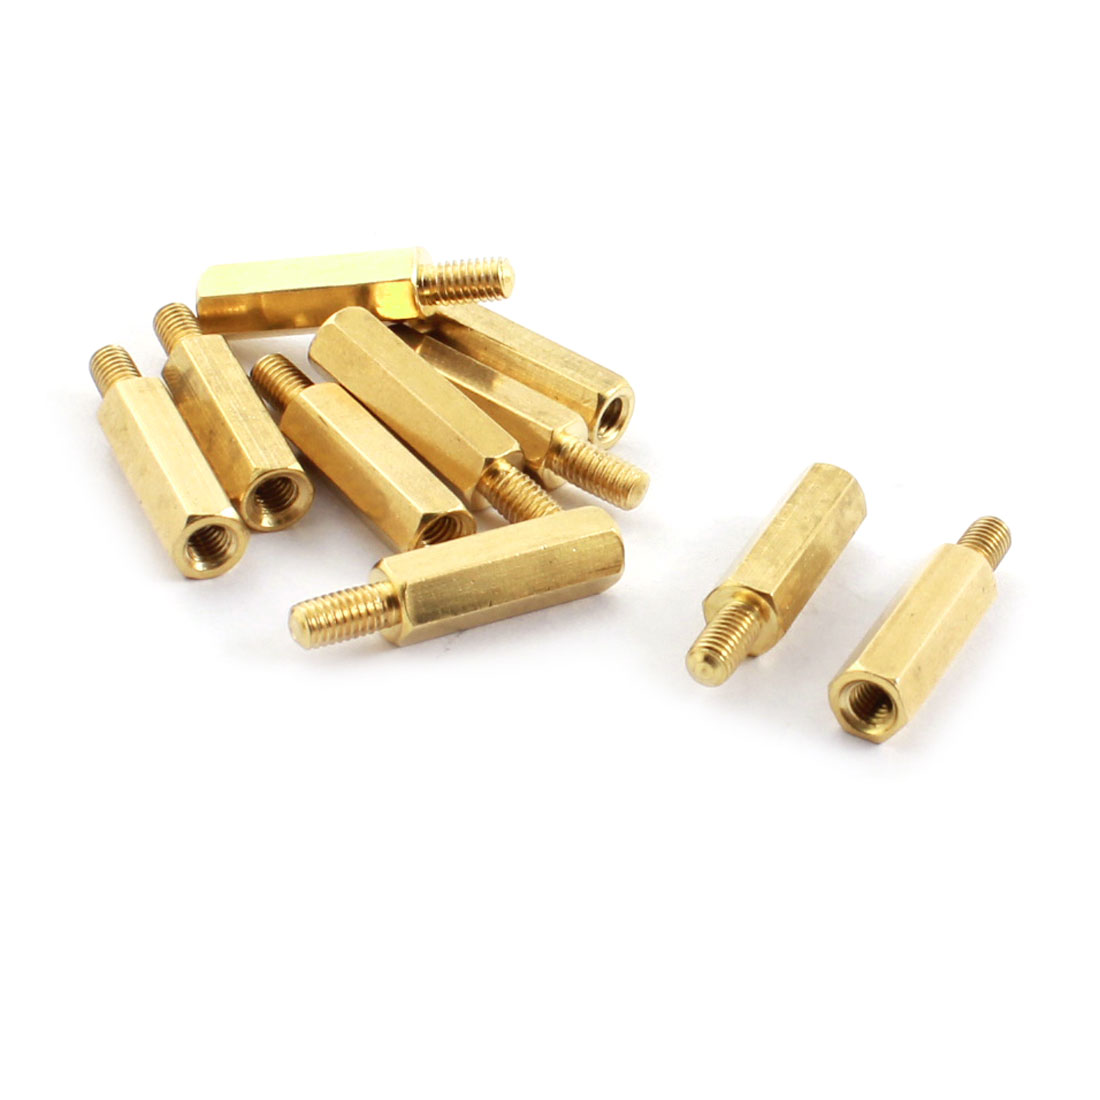 10pcs Male 5mm x M3 Female 15mm+5mm Brass Screw Standoff Spacer